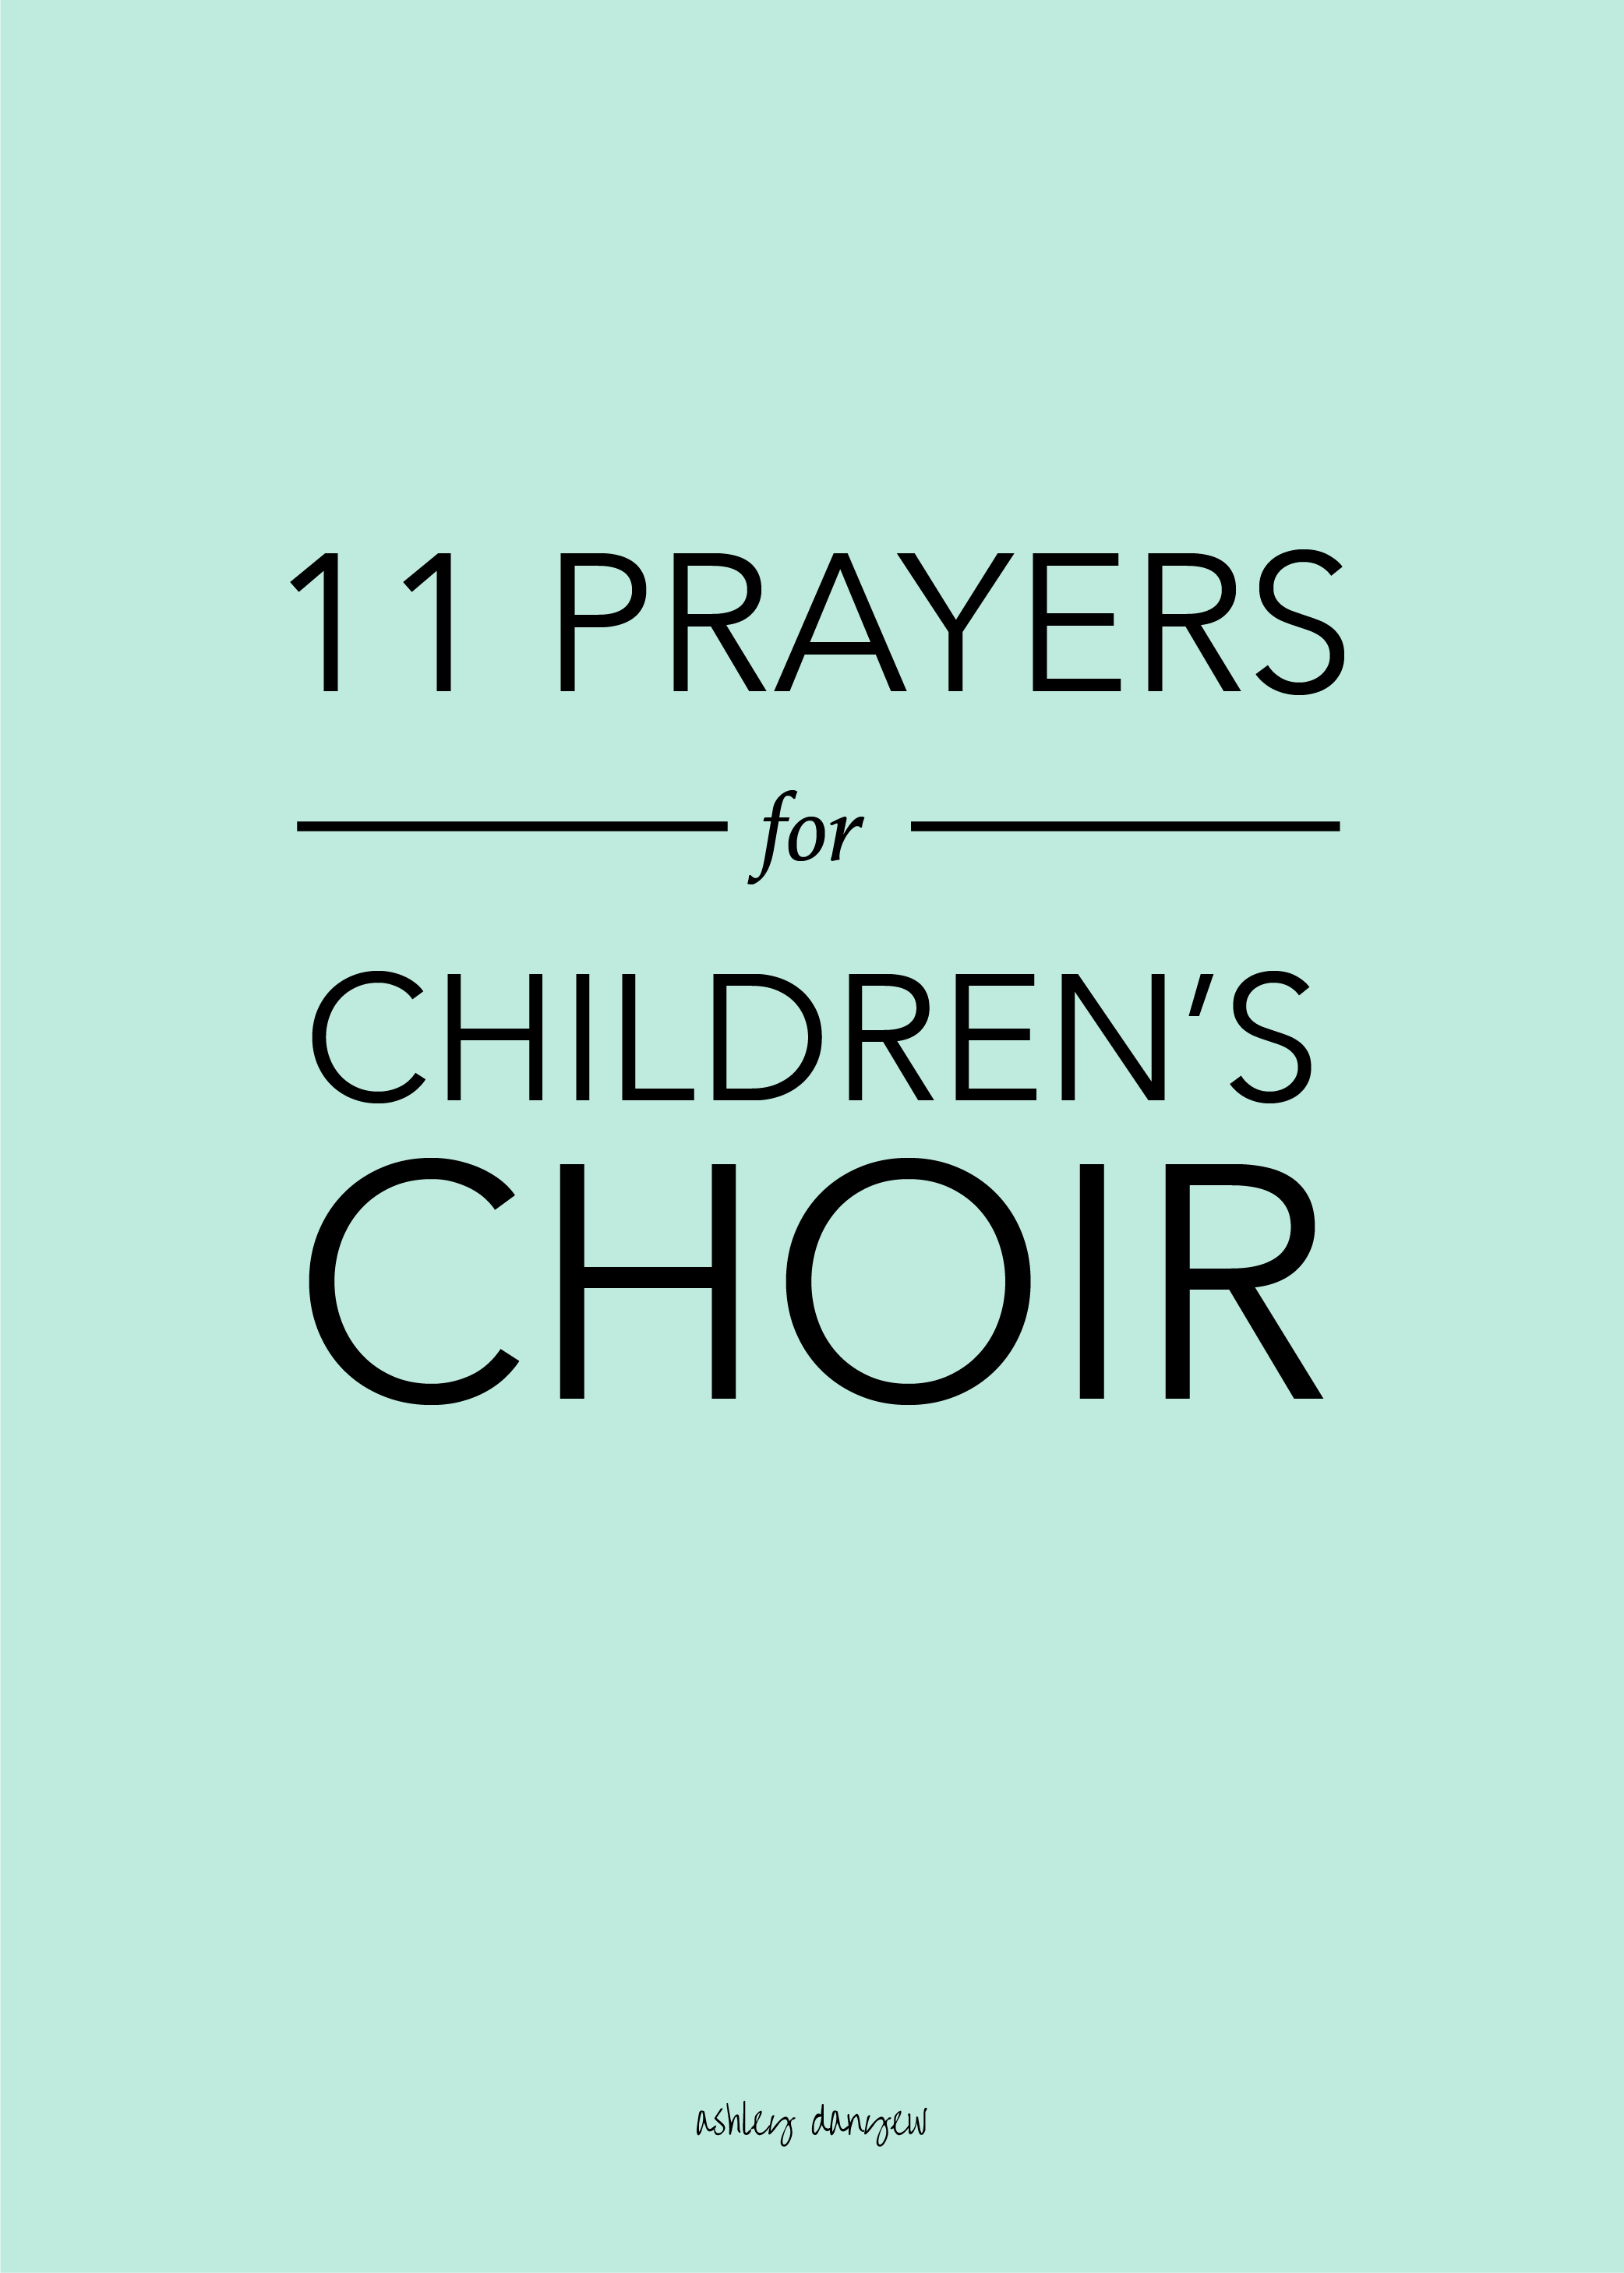 Copy of 11 Prayers for Children's Choir